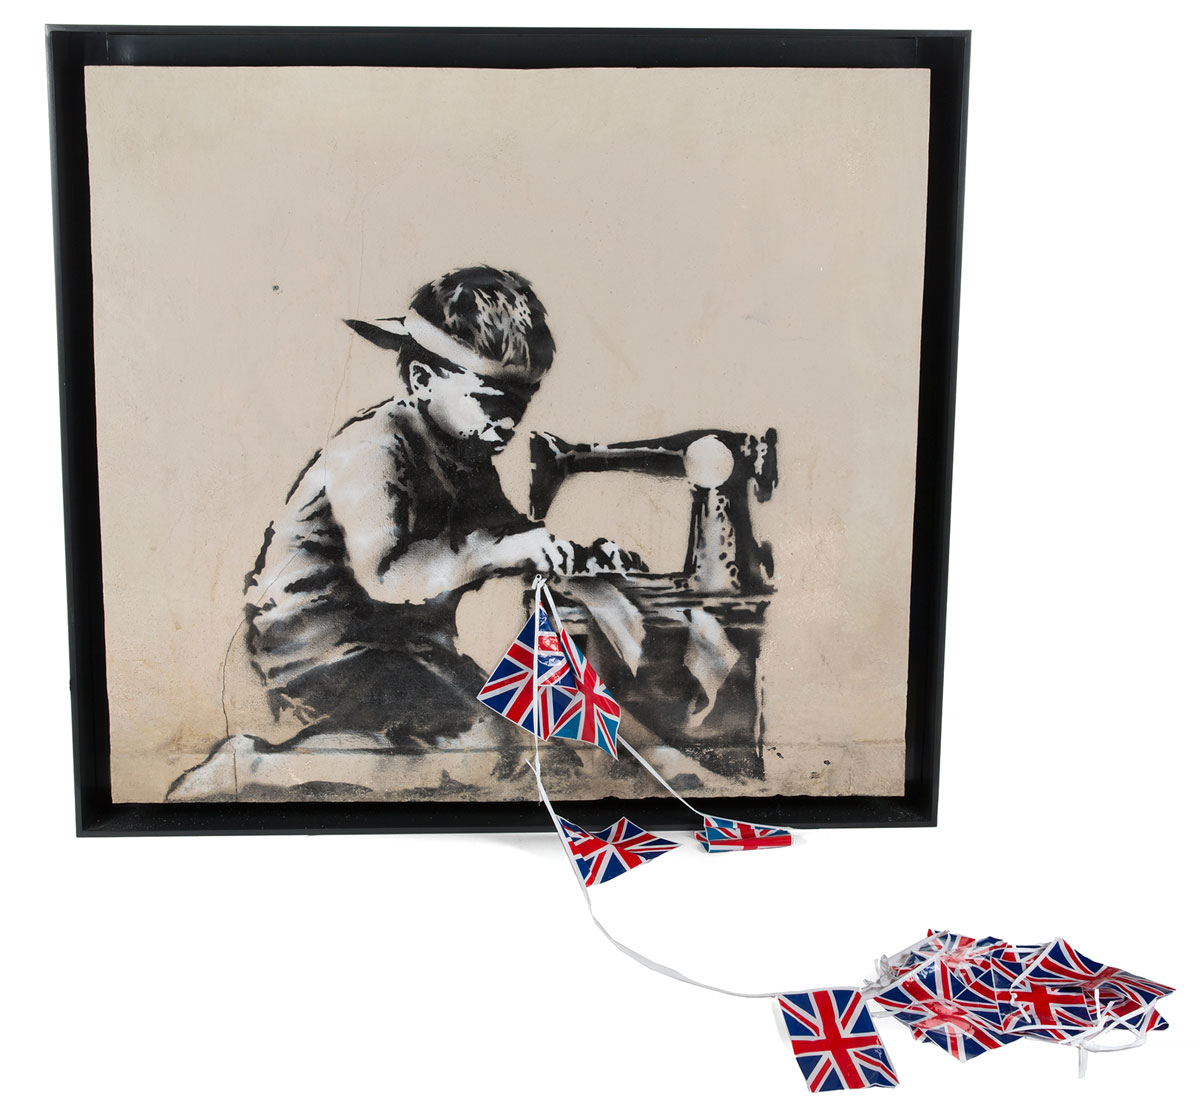 https://www.artsandcollections.com/wp-content/uploads/2018/11/Artist-Buys-Banksy's-'Slave-Labour'-To-Whitewash-It.jpg